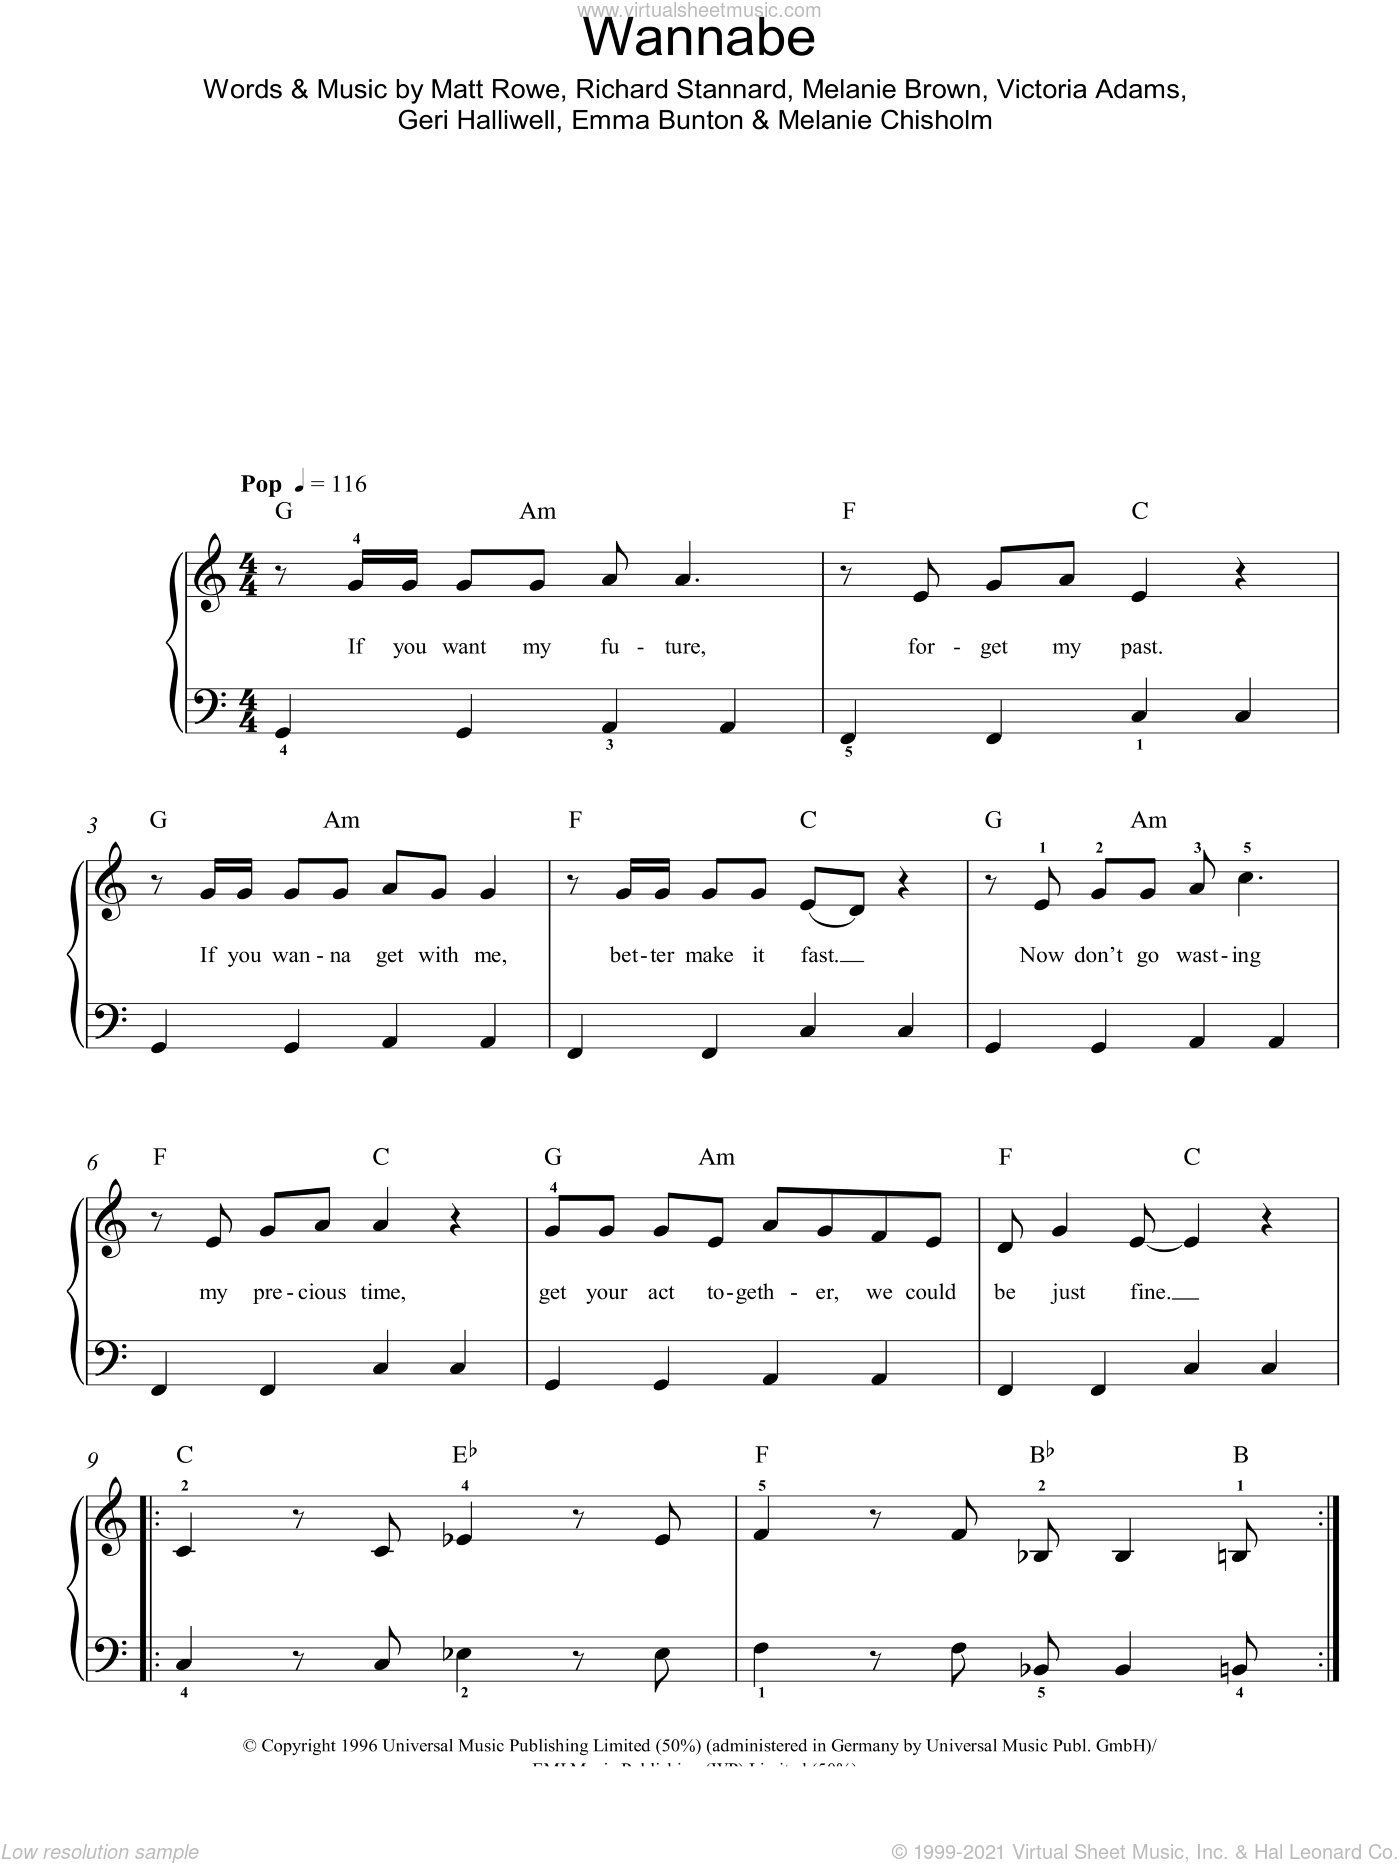 Wannabe sheet music for piano solo by Victoria Adams